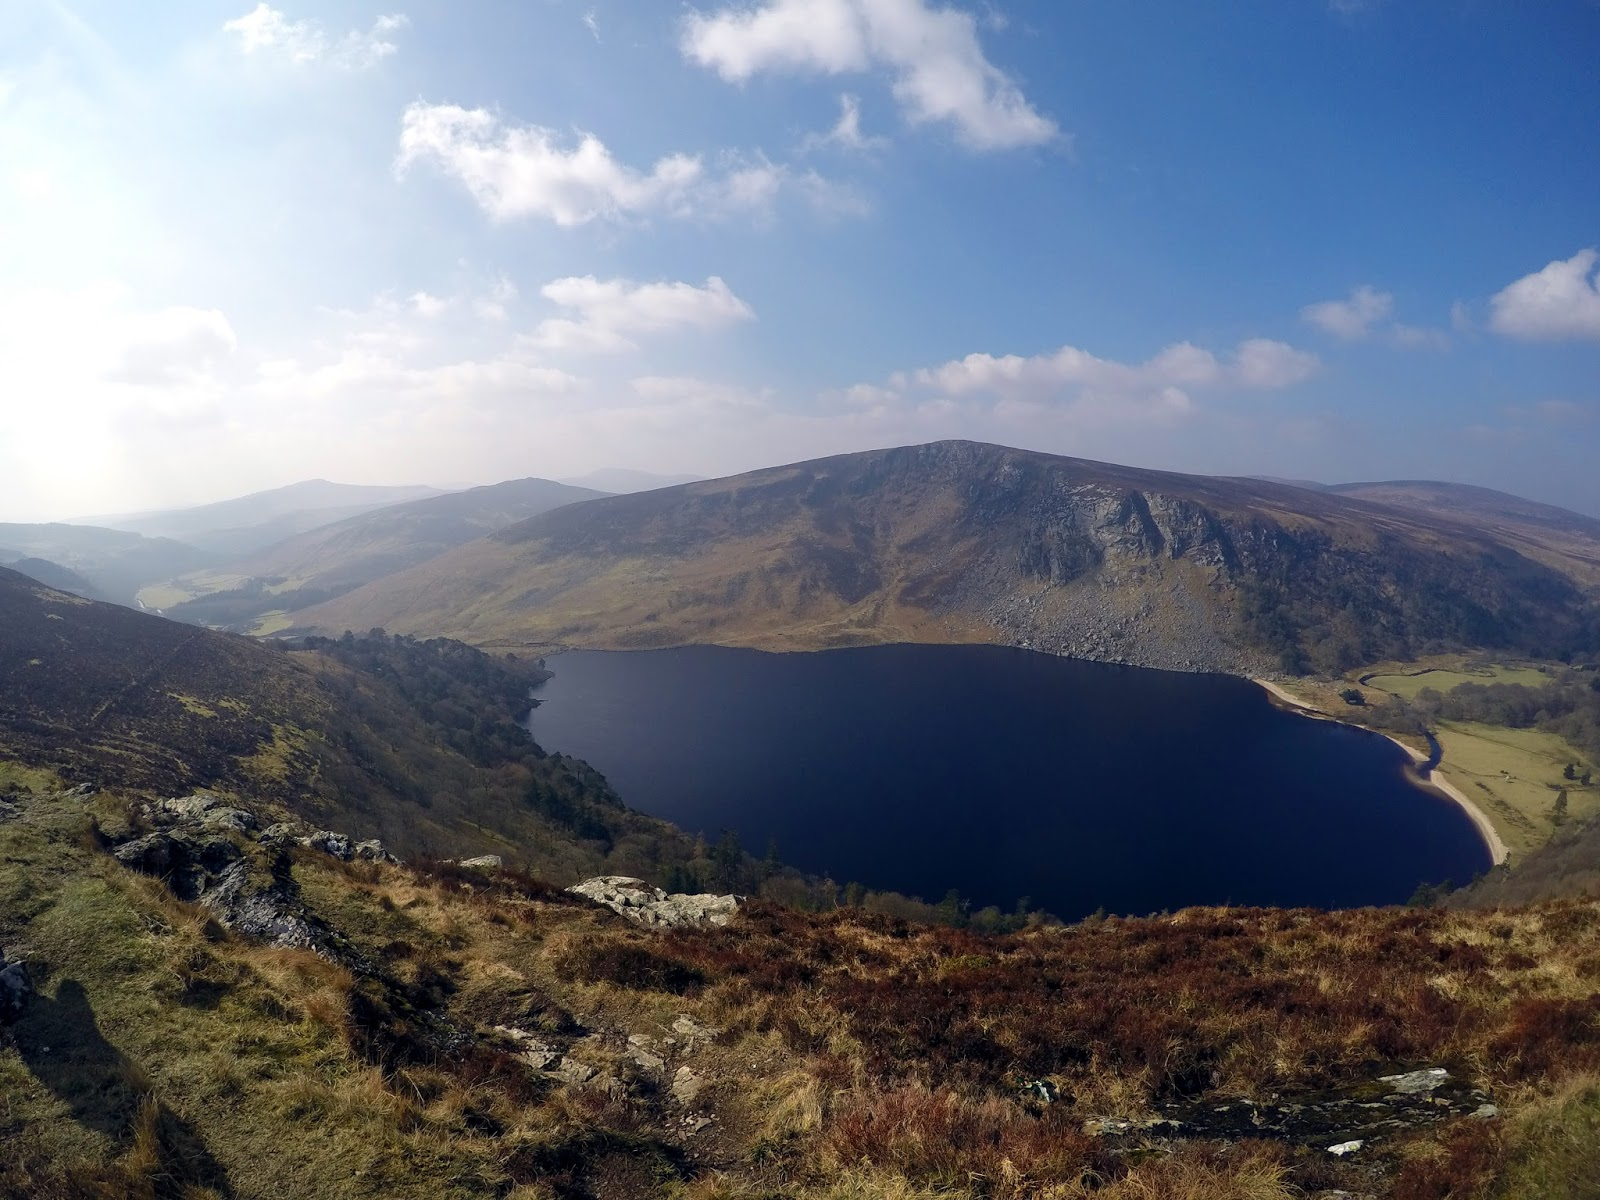 http://www.theroamingrenegades.com/2015/04/exploring-breathtaking-Wicklow-Mountains.html